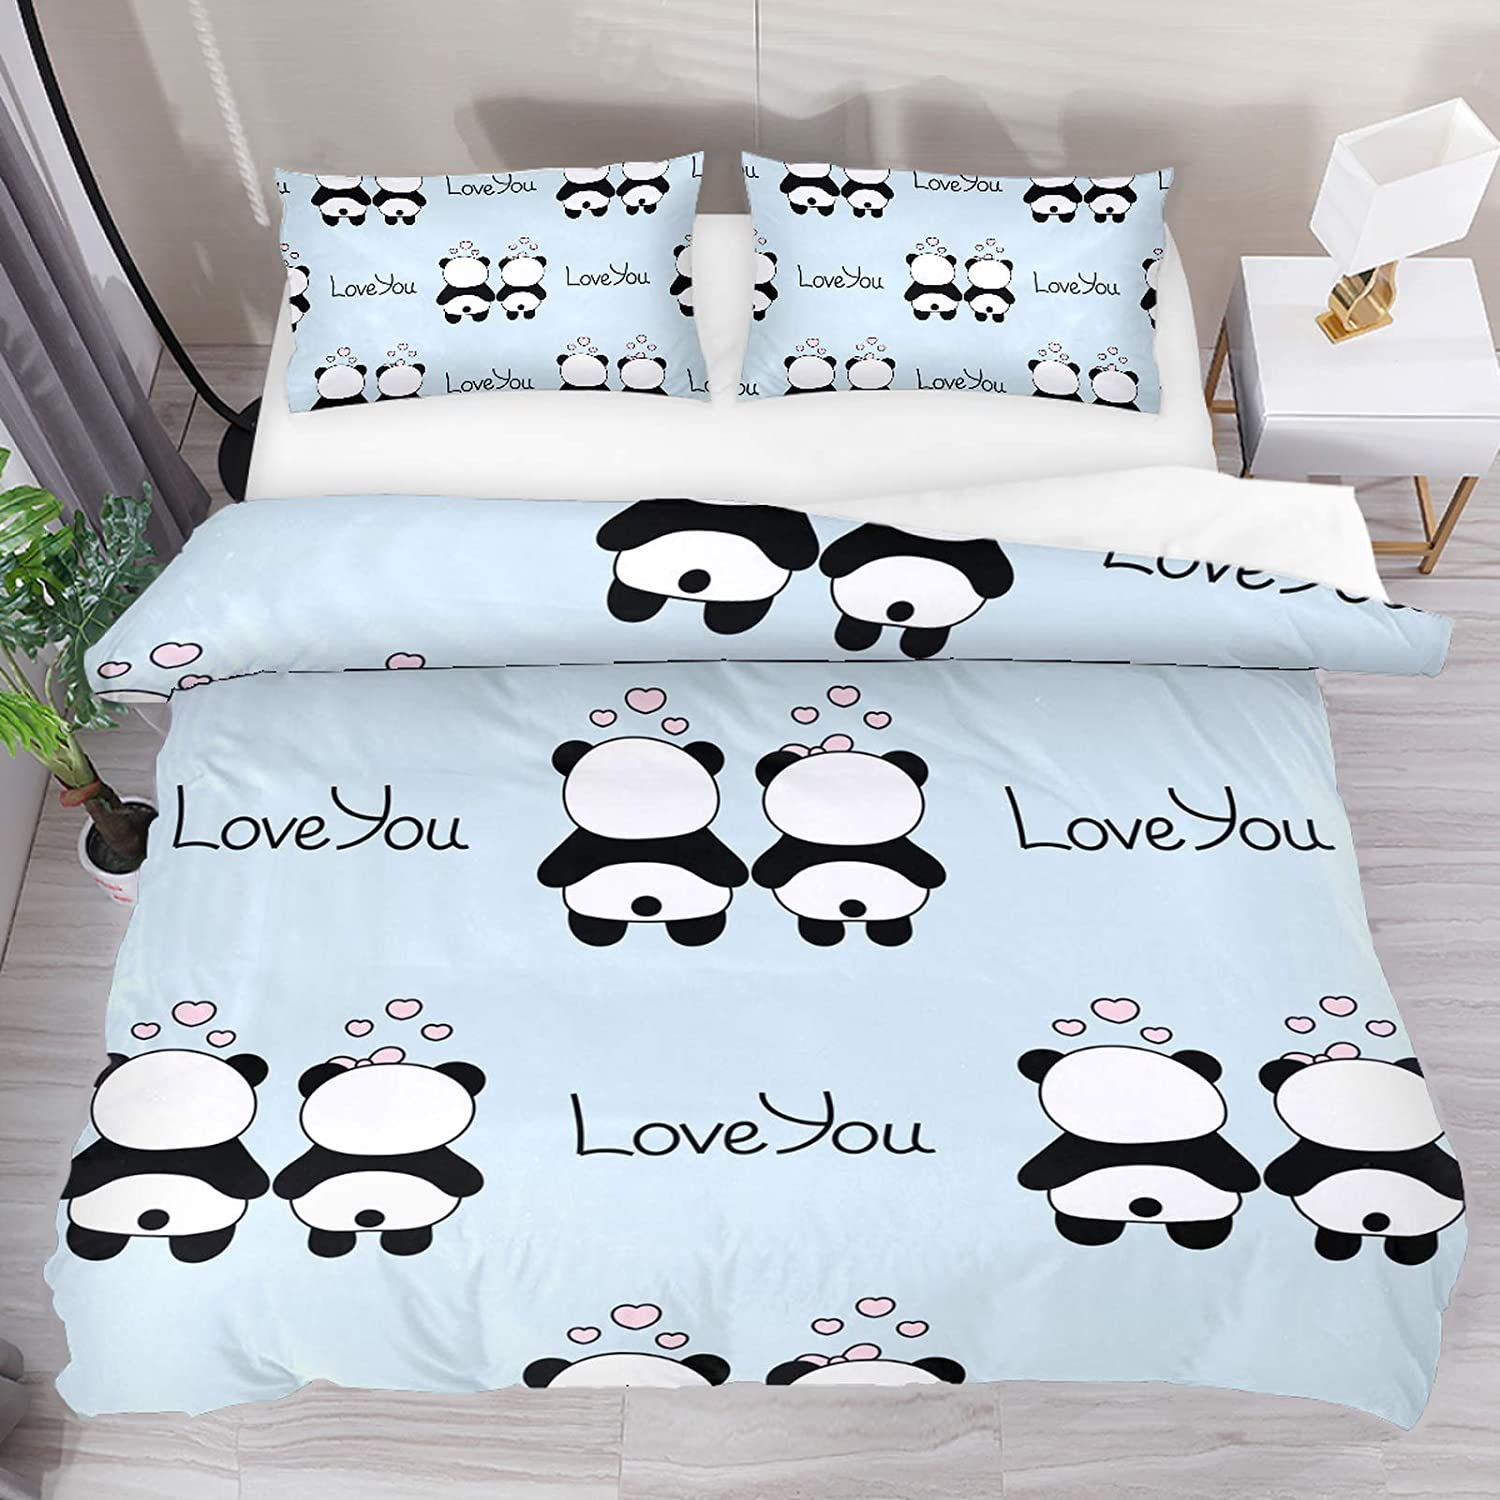 HEOEH Cute Pandas in Love Pattern Bedding Duvet Cover 3 Piece Set - Ultra Soft Double Microfiber Comforter Cover with Zipper Closure and 2 Pillow Sham, King (No Comforter)